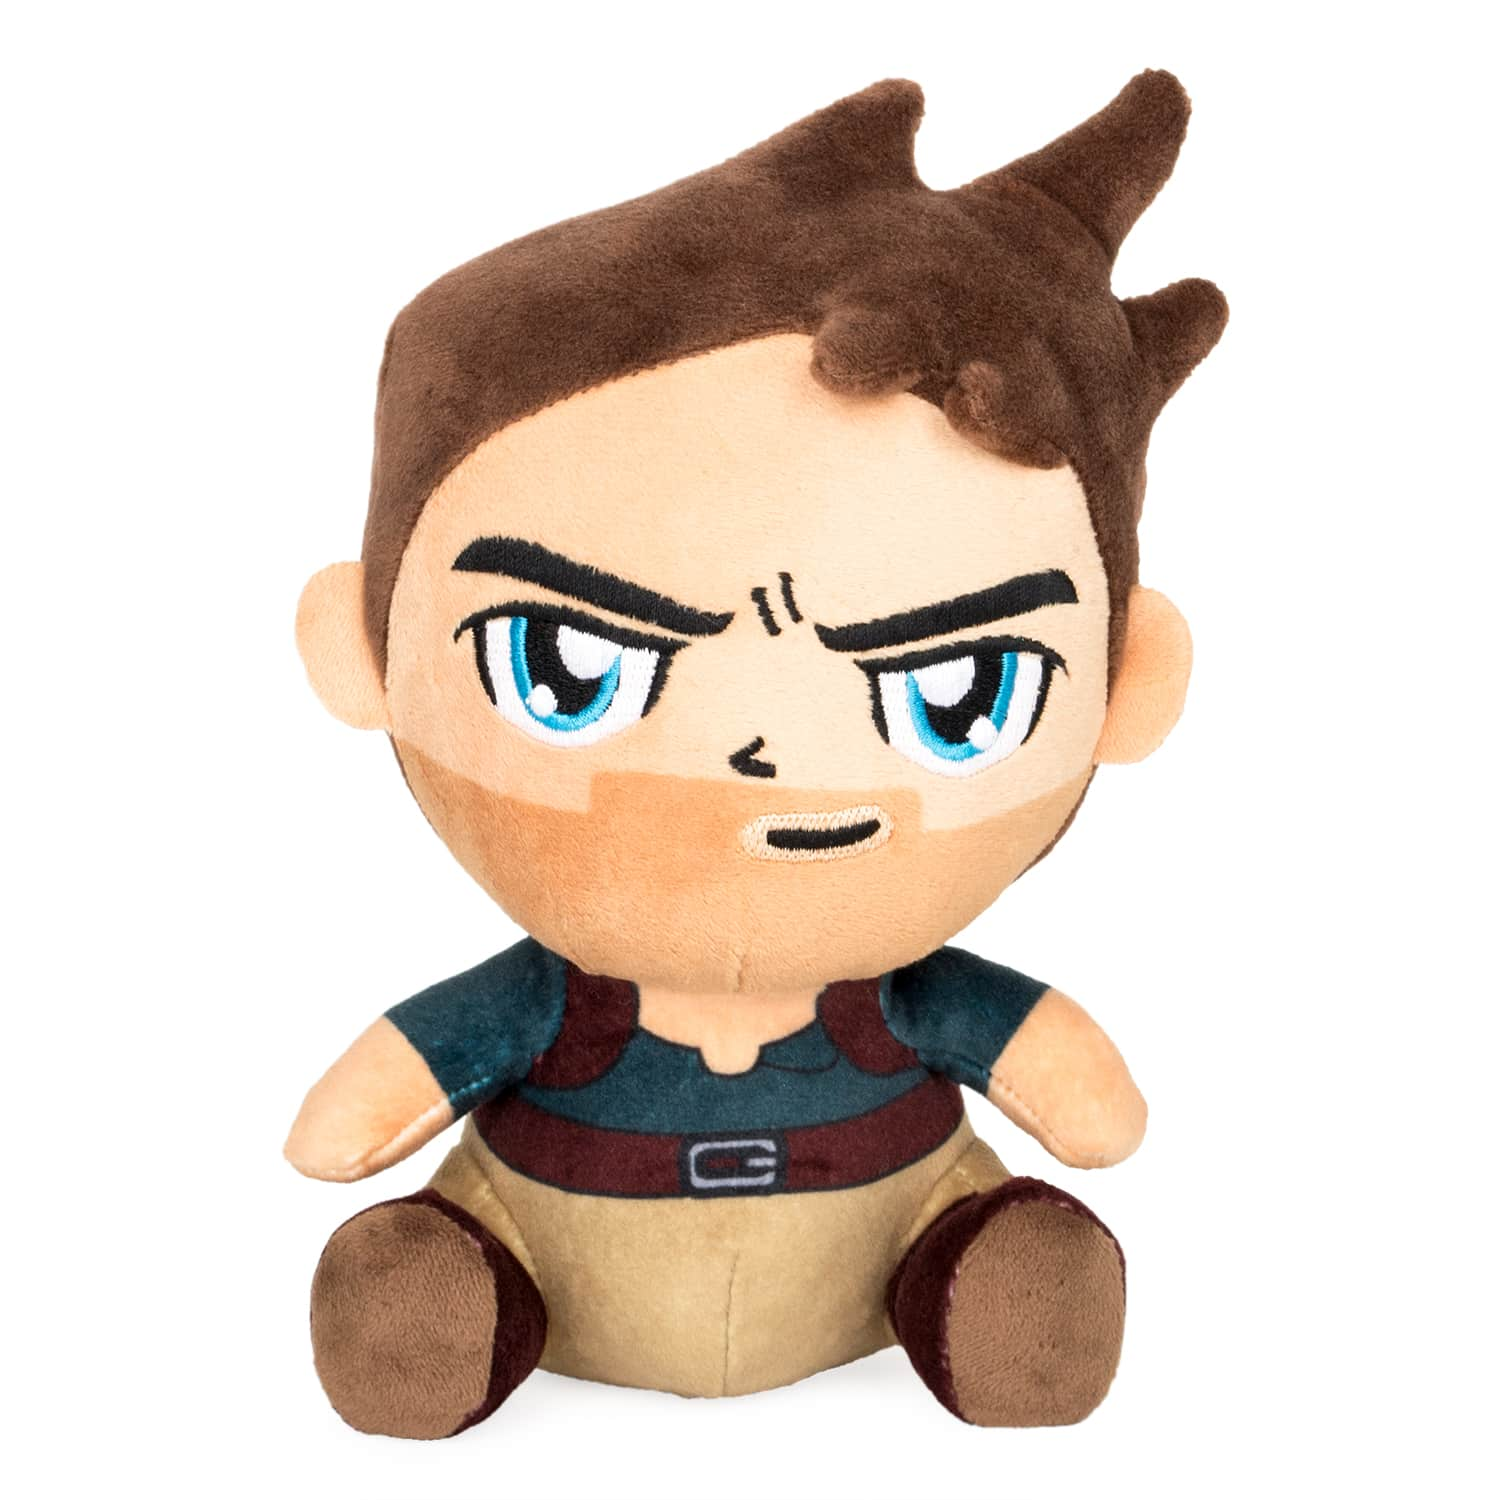 NATHAN DRAKE PELUCHE UNCHARTED 4